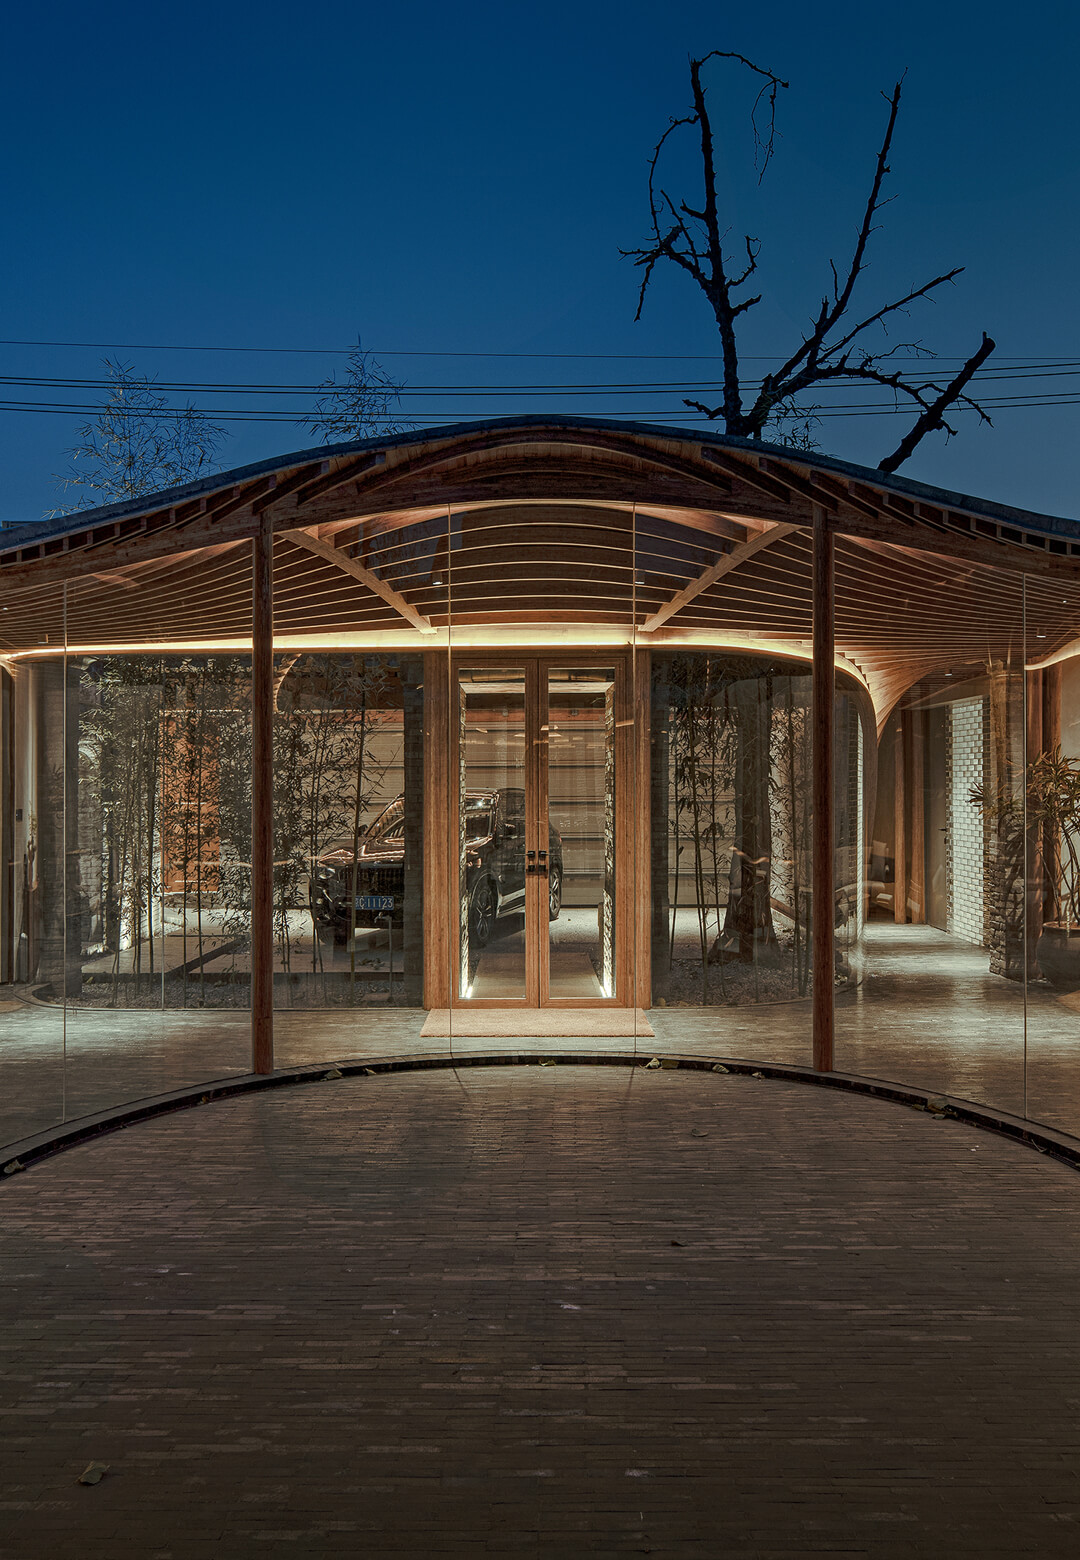 Qishe Courtyard renovated by Beijing based ARCHSTUDIO - middle courtyard | Qishe Courtyard | ARCHSTUDIO | STIRworld